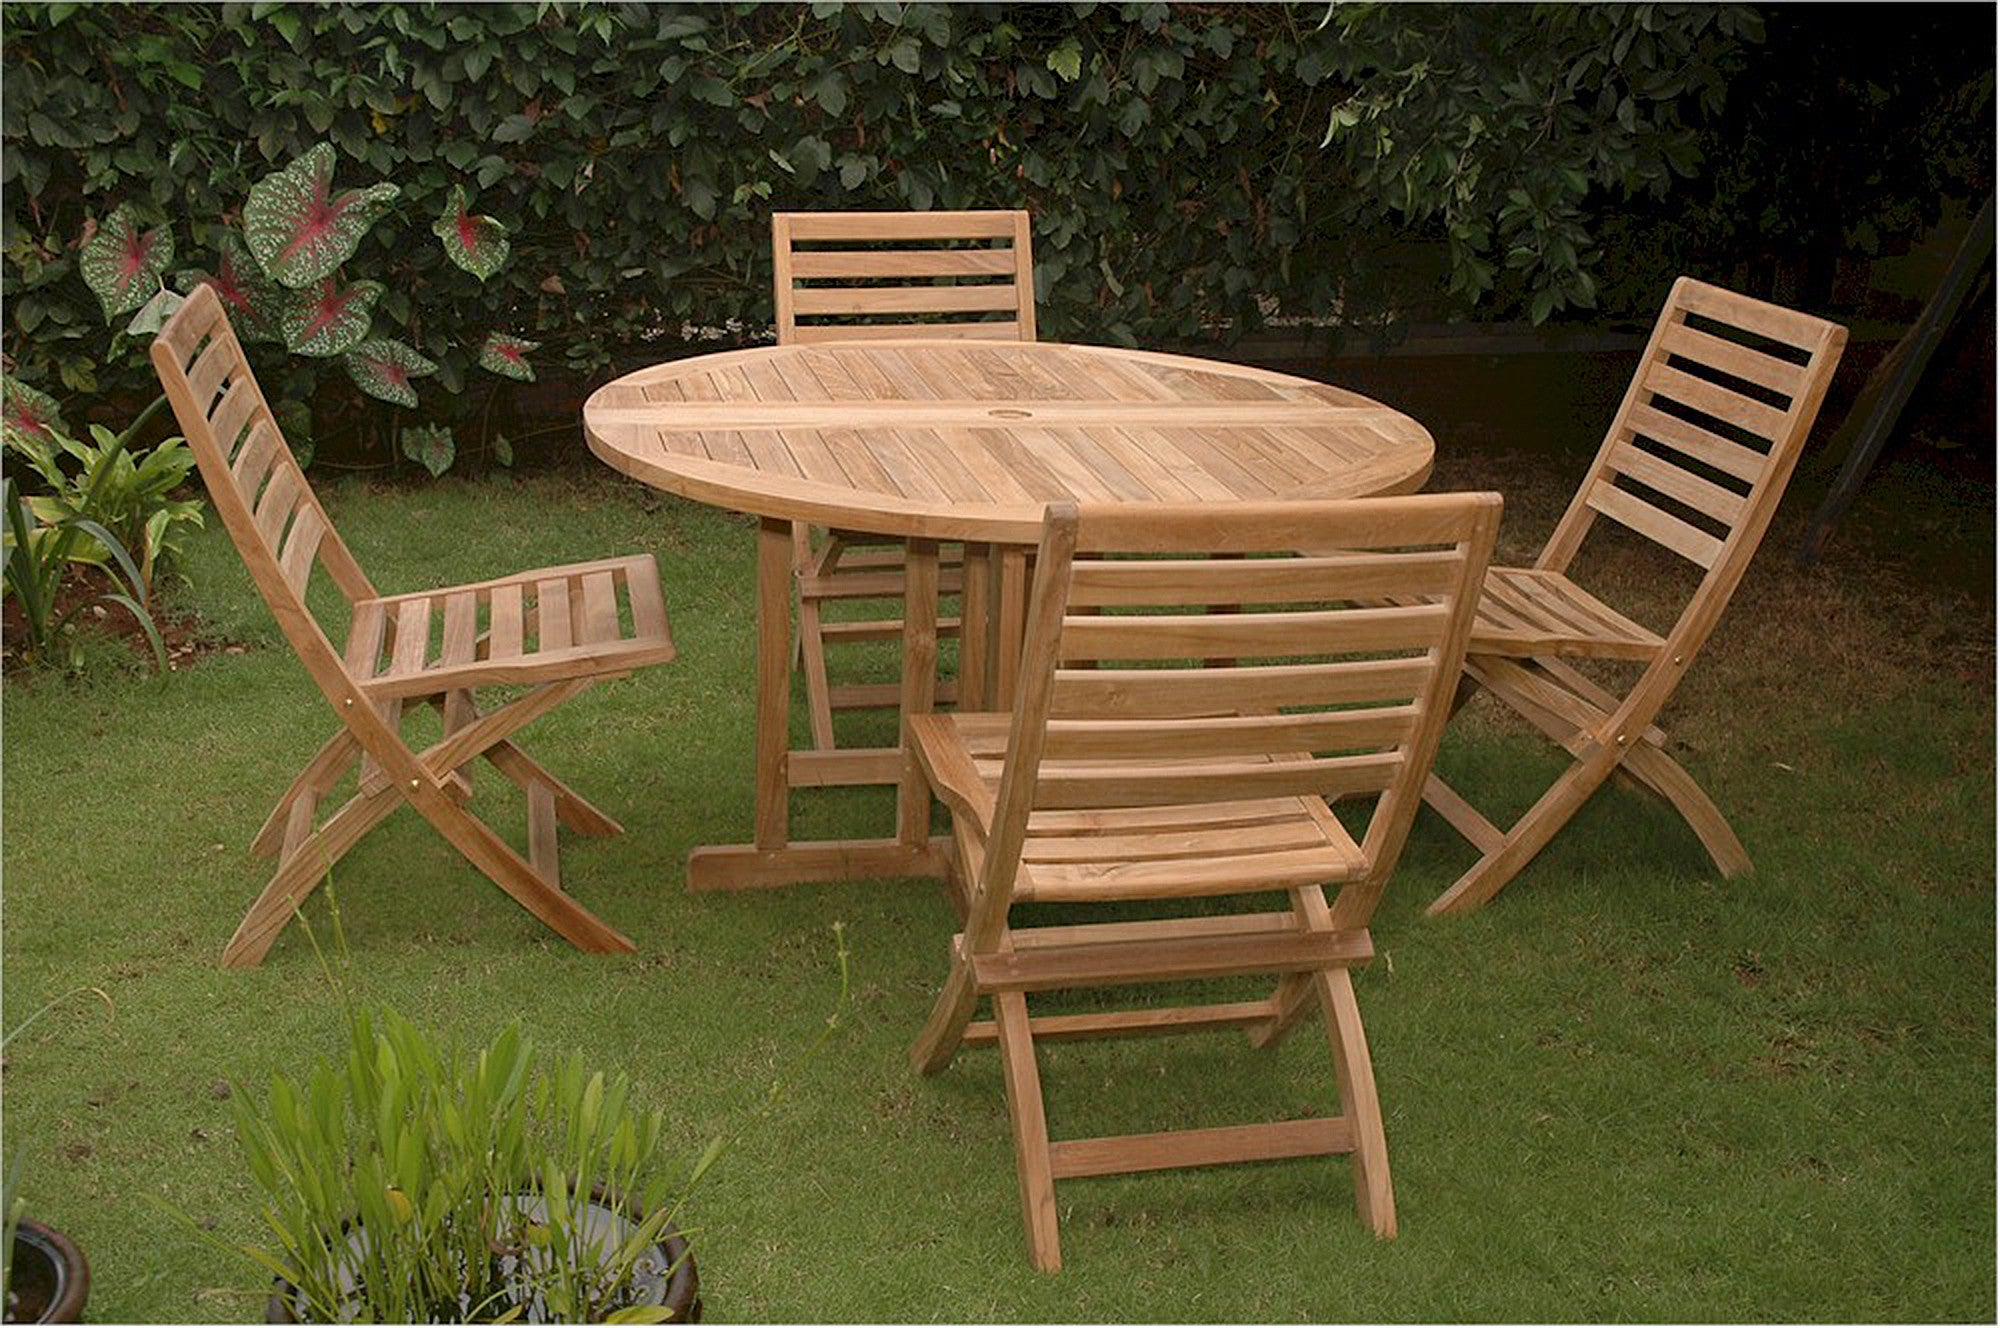 Anderson Teak 5 Piece Round Table Teak Patio Dining Set Teakwood Central